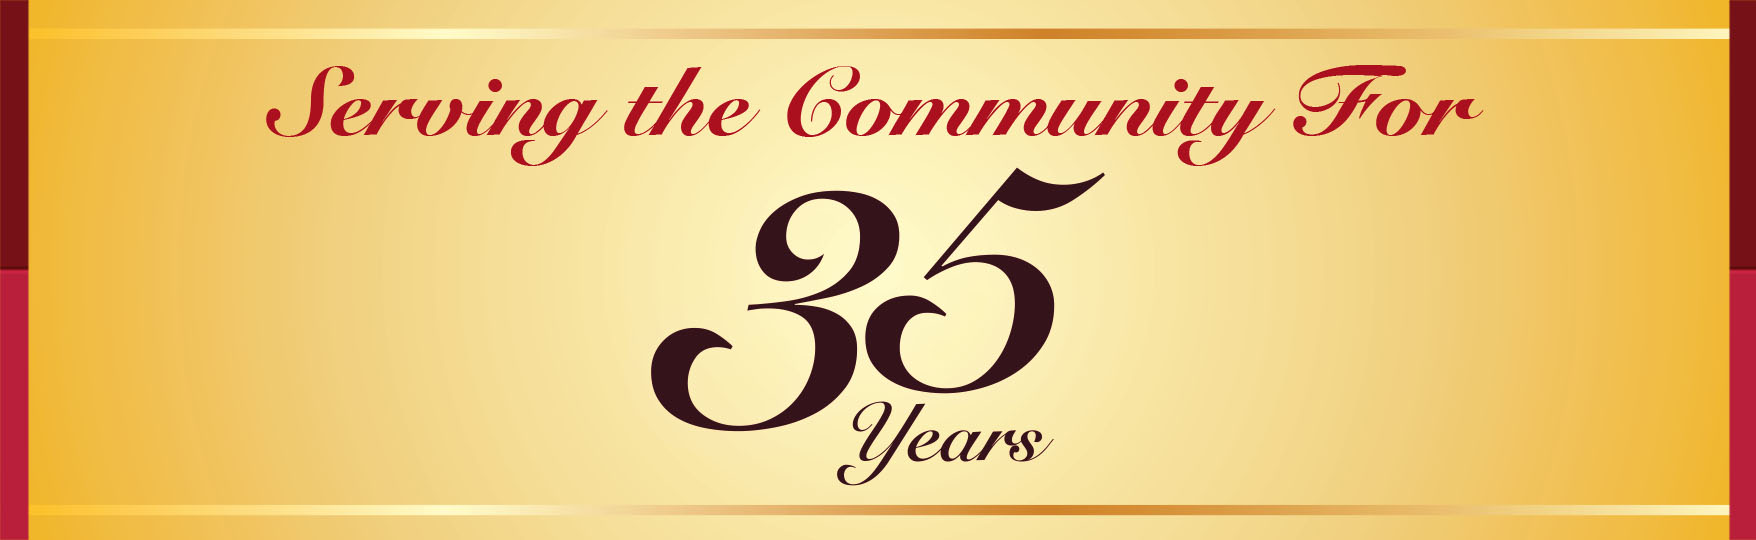 Serving the community for 35 years